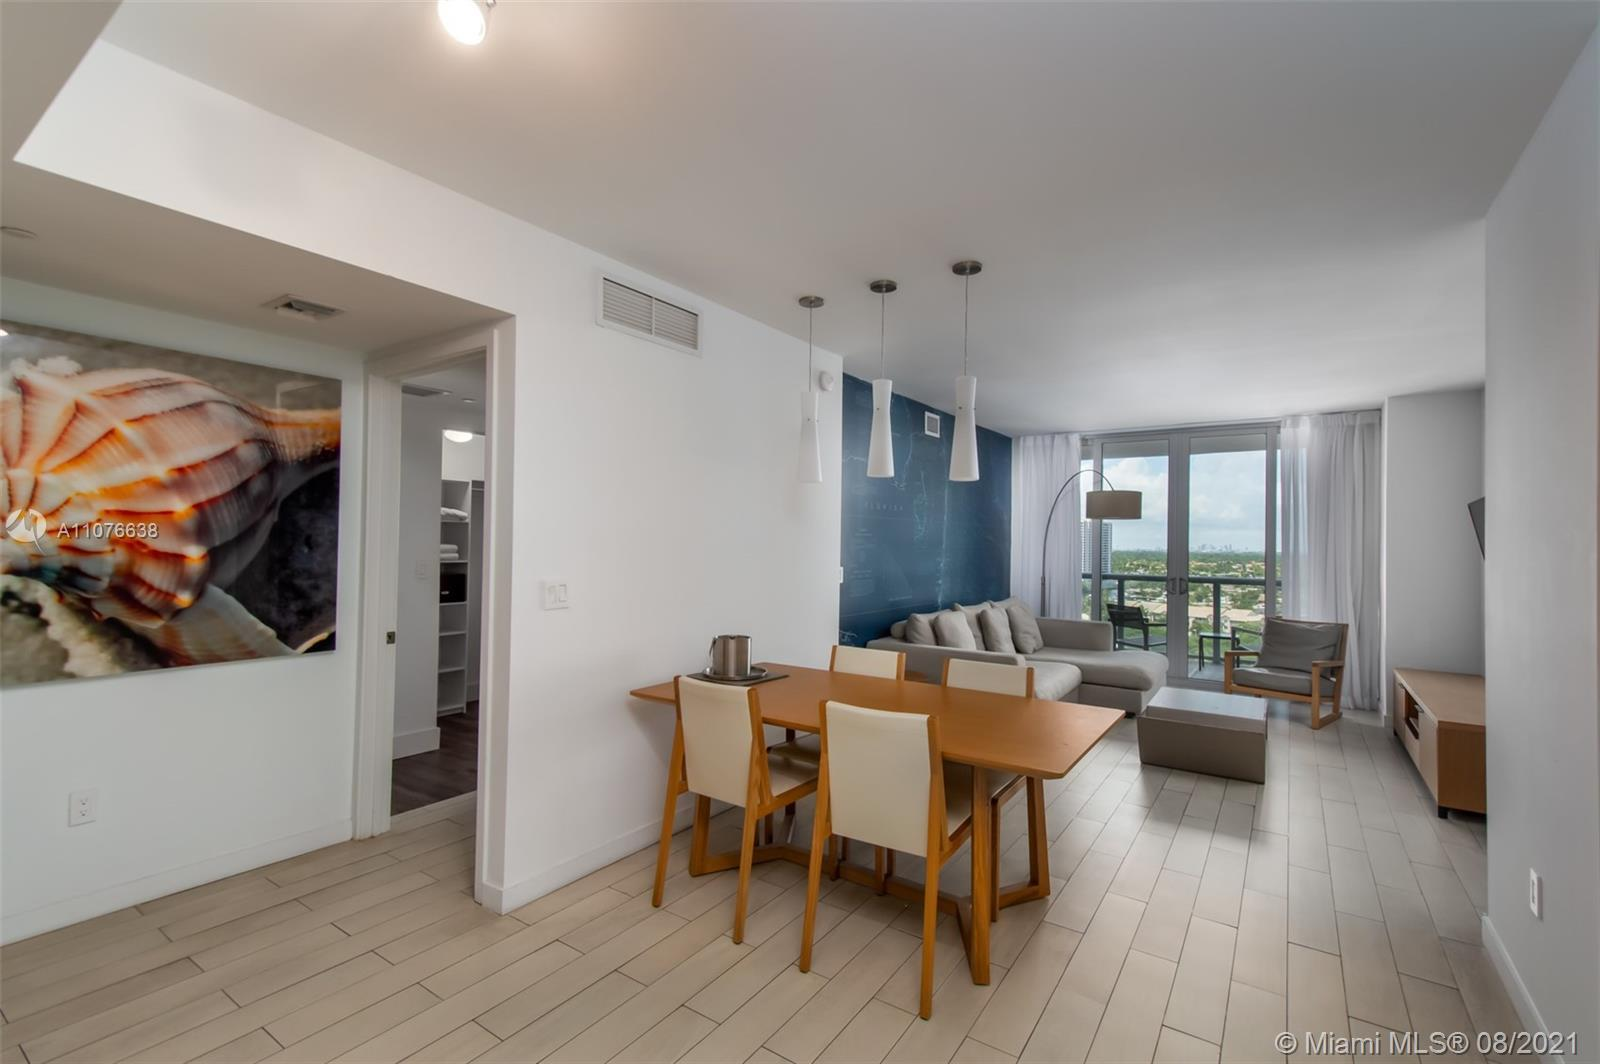 LOCKOFF ,RENT IT AS A ONE UNIT OR TWO SEPARATE SUITES .CAN BE RENTED DAILY .GREAT AMENITIES, INFINIT